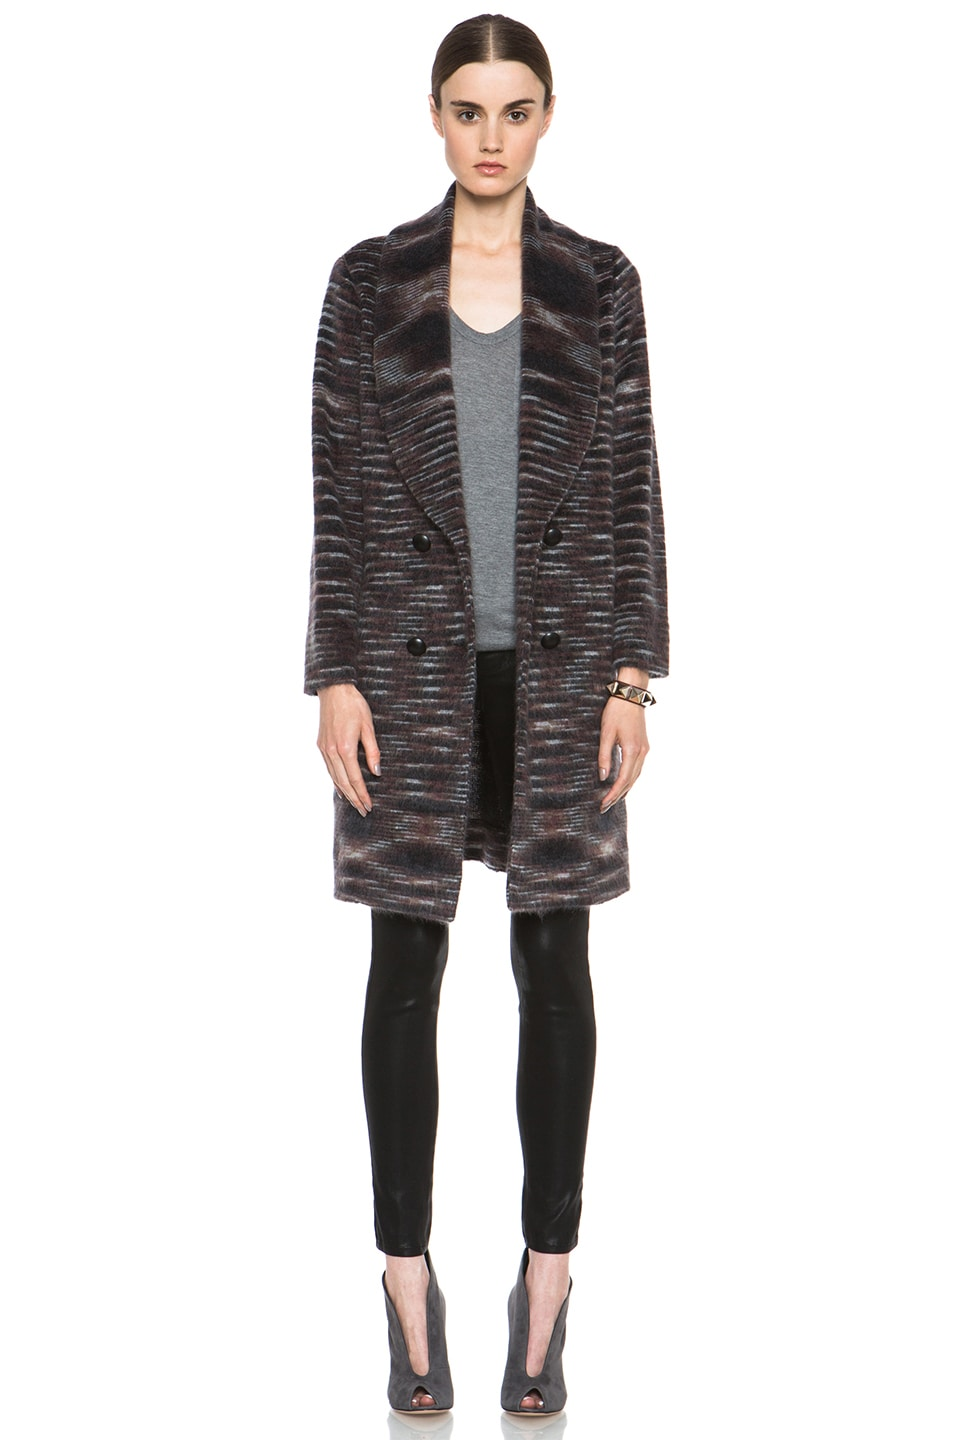 Image 1 of Missoni Striped Fuzzy Cardigan Coat in Black & Brown